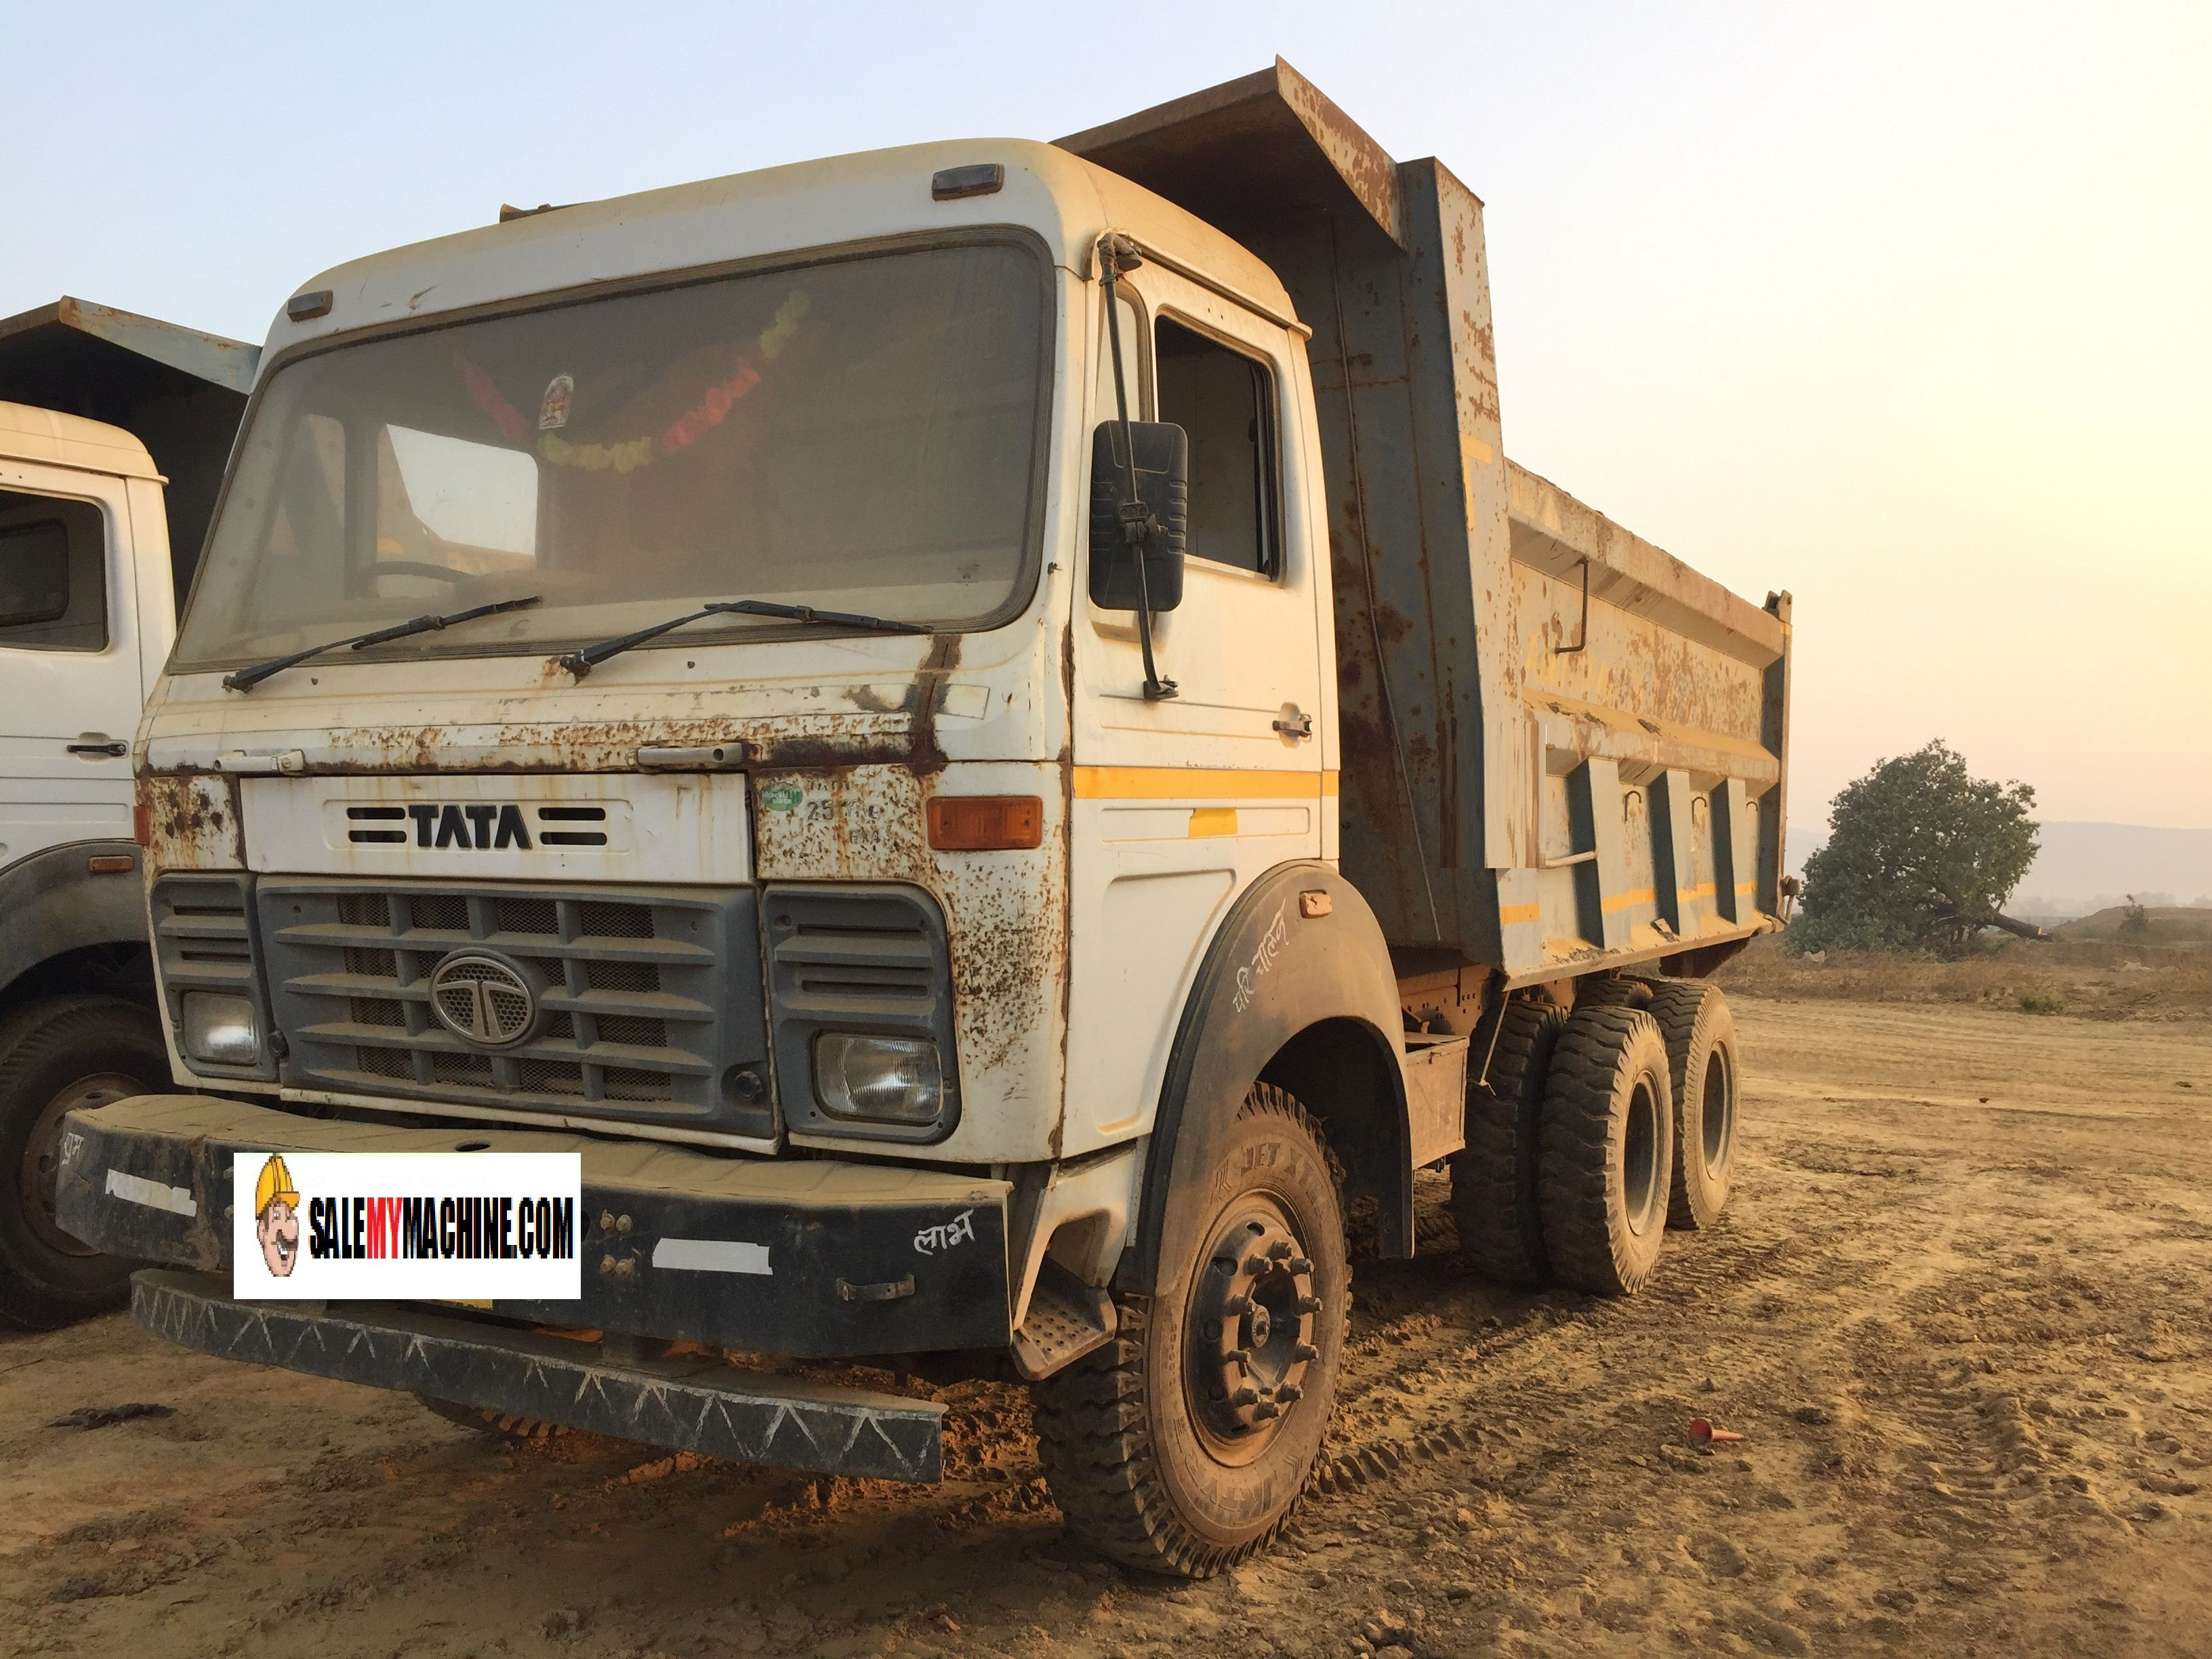 USED SECOND HAND TATA HYVA FOR SALE IN ODSISHA,INDIA .TO